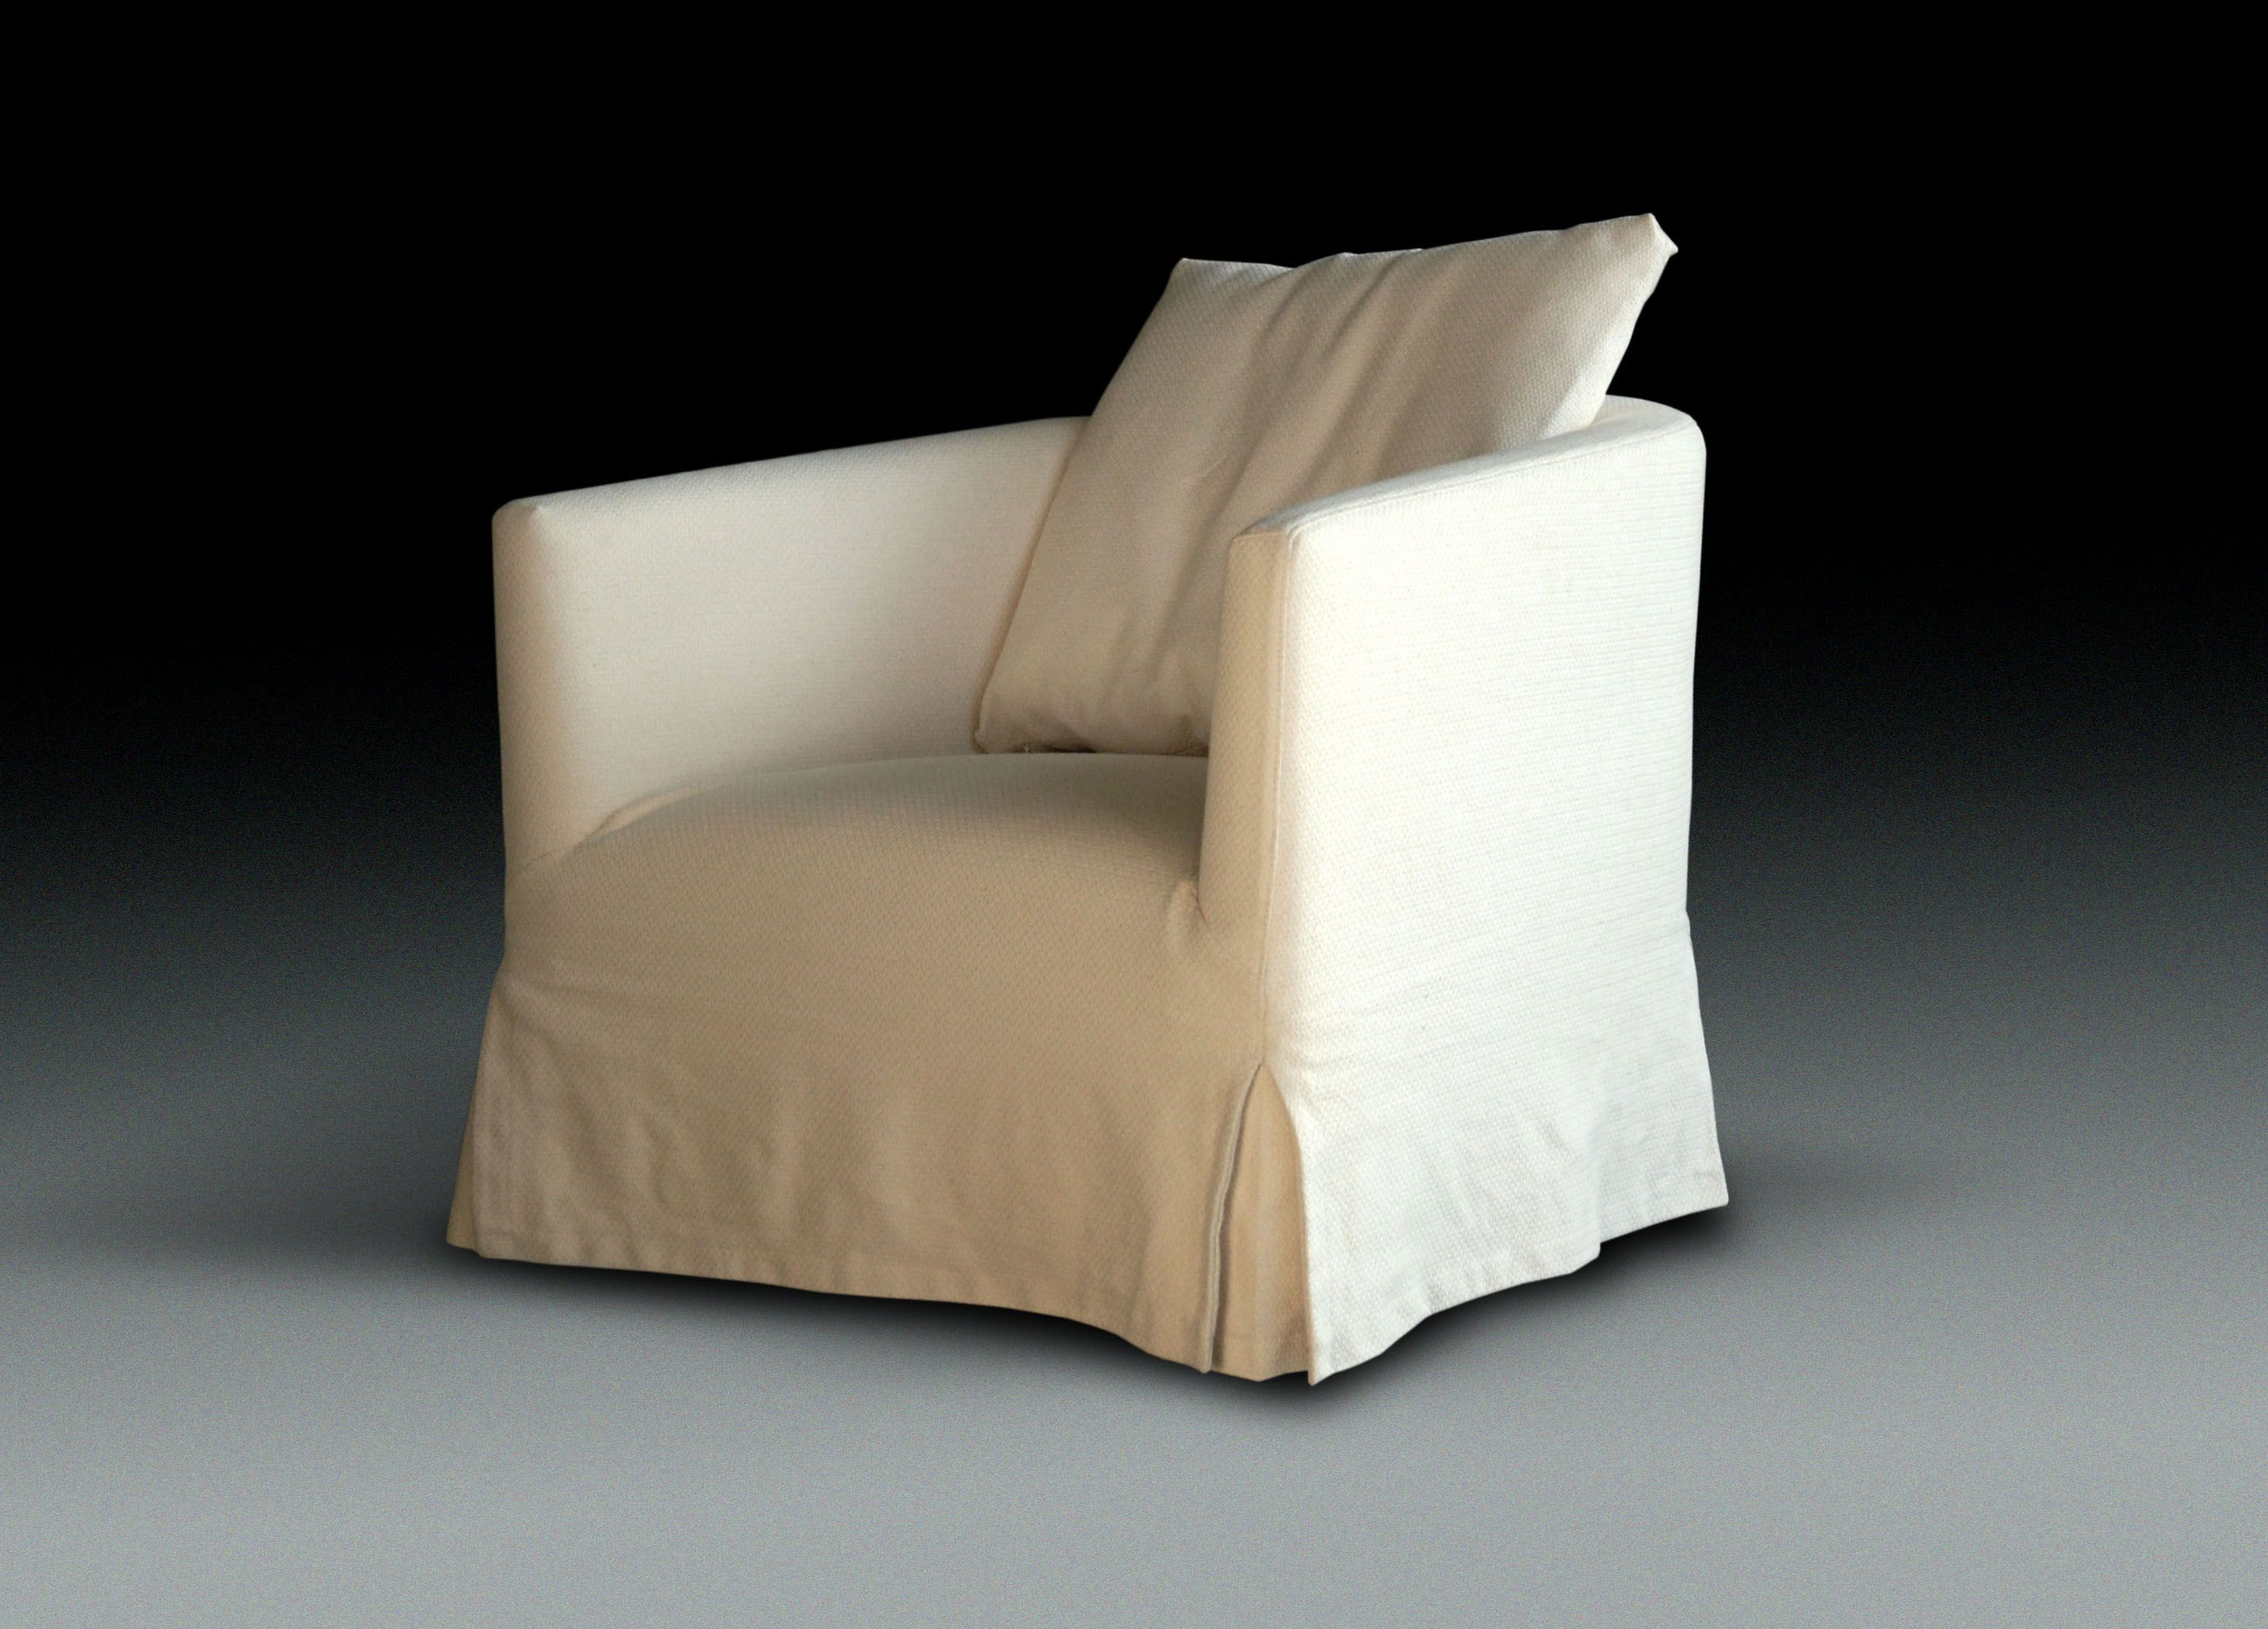 Polis Lounge chair sofa